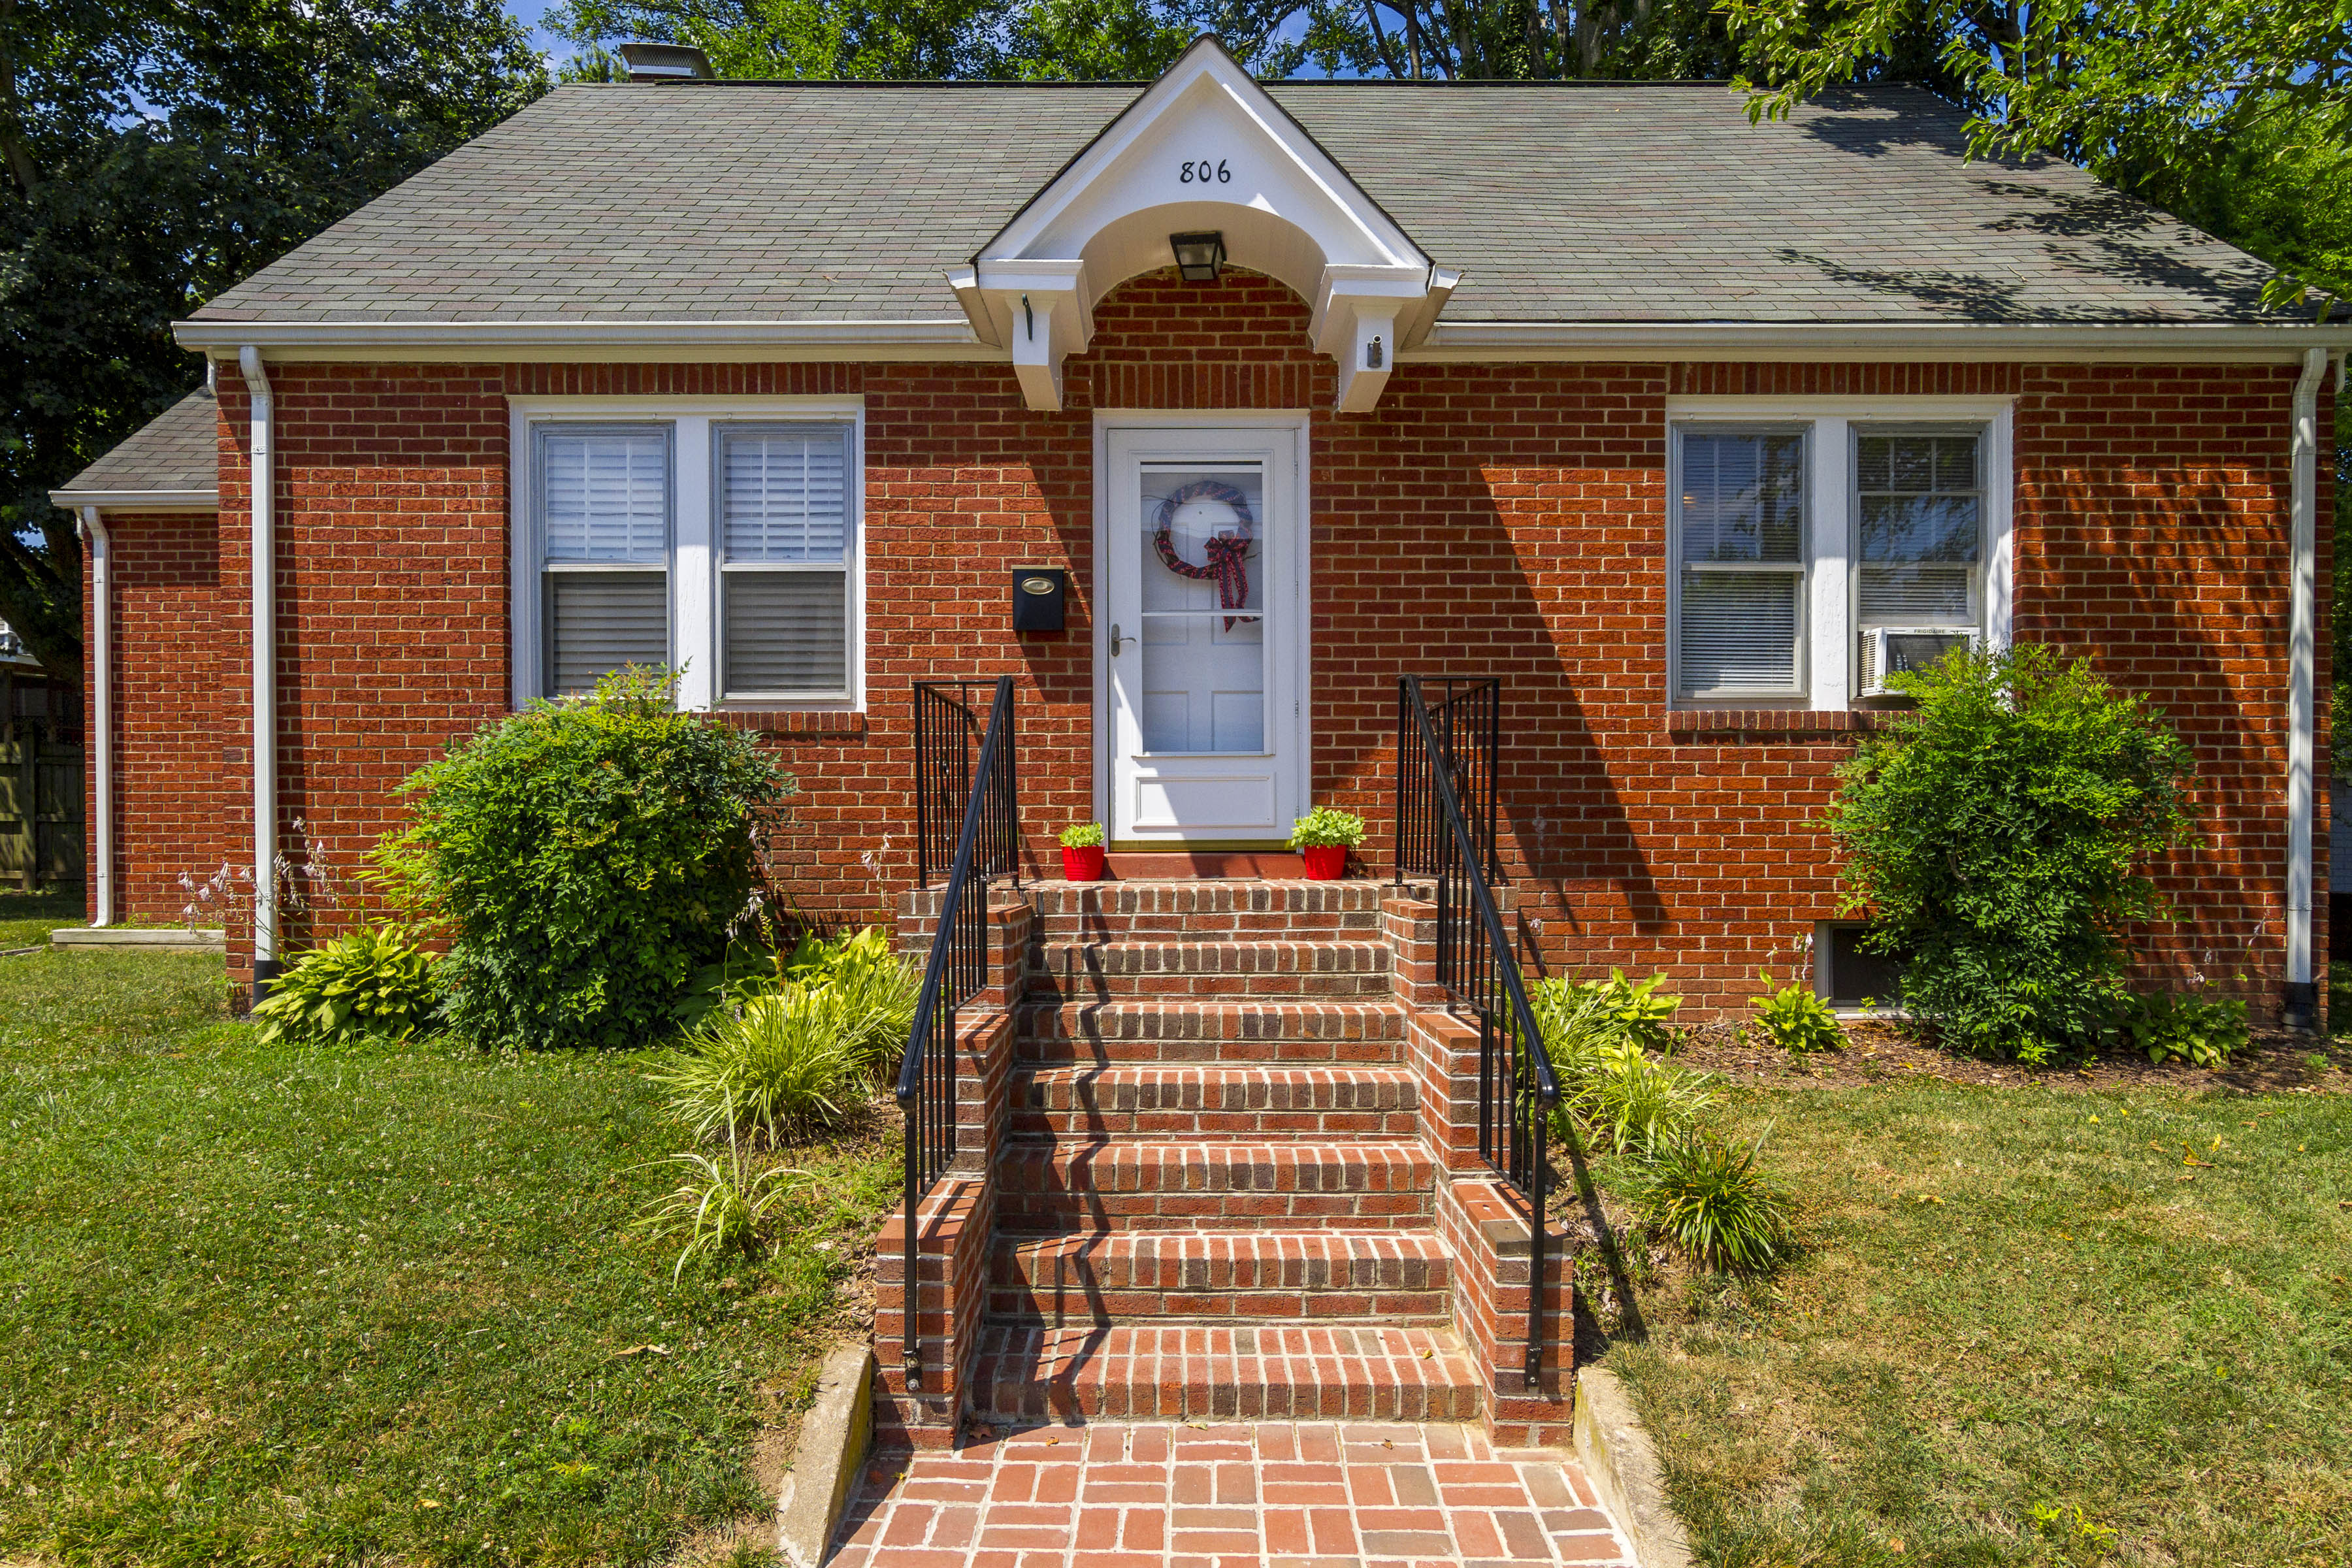 Home of the Week: Downtown Fredericksburg home